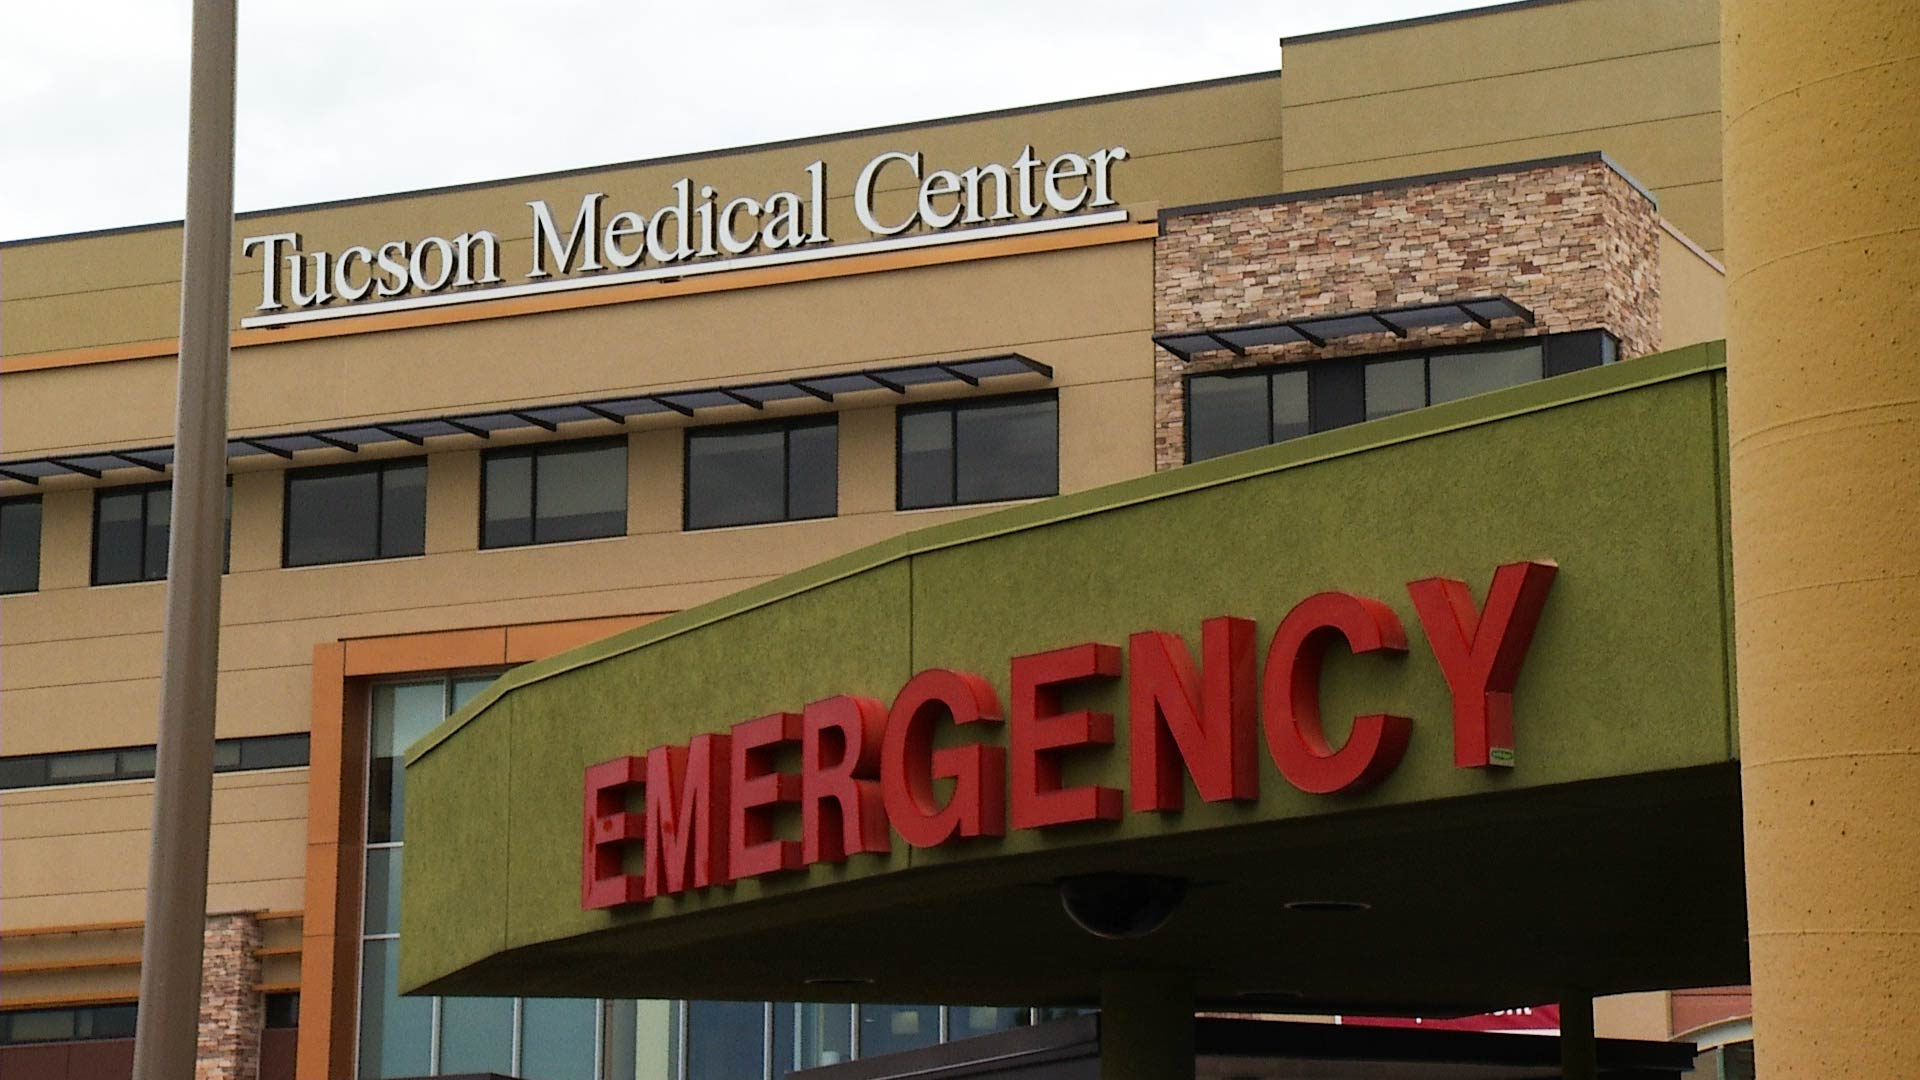 The Tucson Medical Center emergency room.